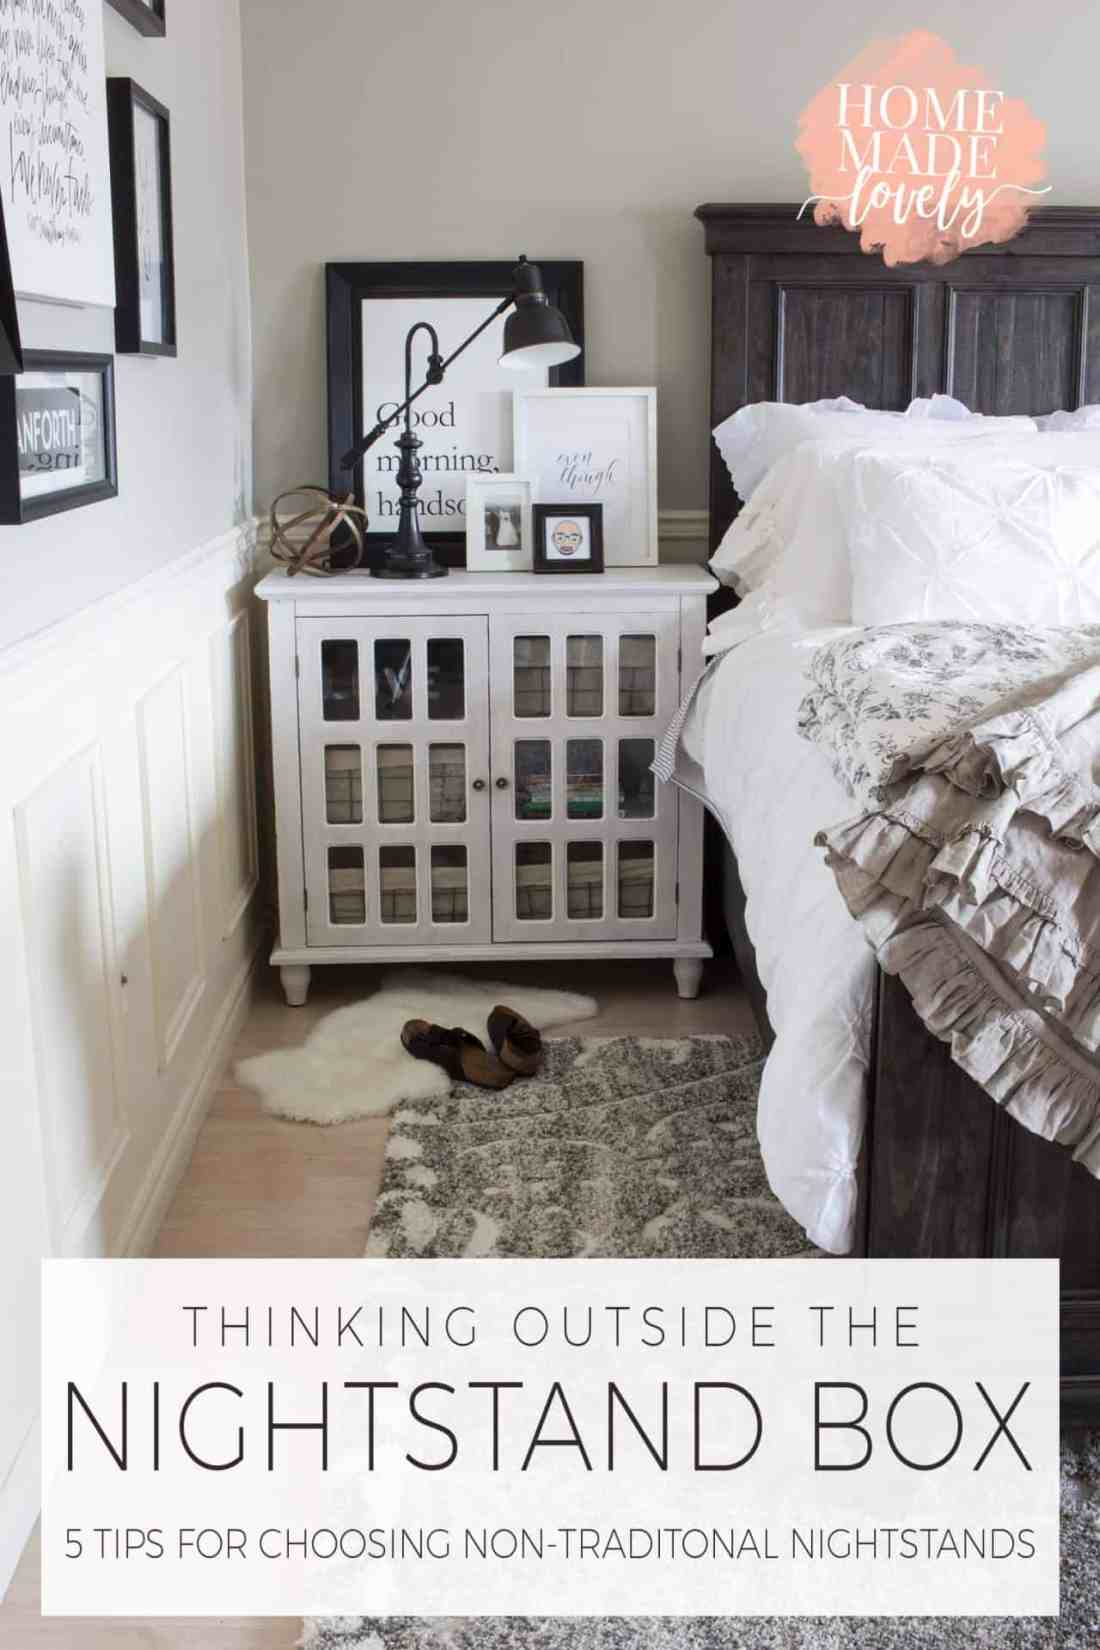 When we made over our farmhouse master bedroom recently, we thought outside the nightstand box and chose two Bray Accent Cabinets from The Brick. Here are 5 tips for choosing non-traditional nightstands.